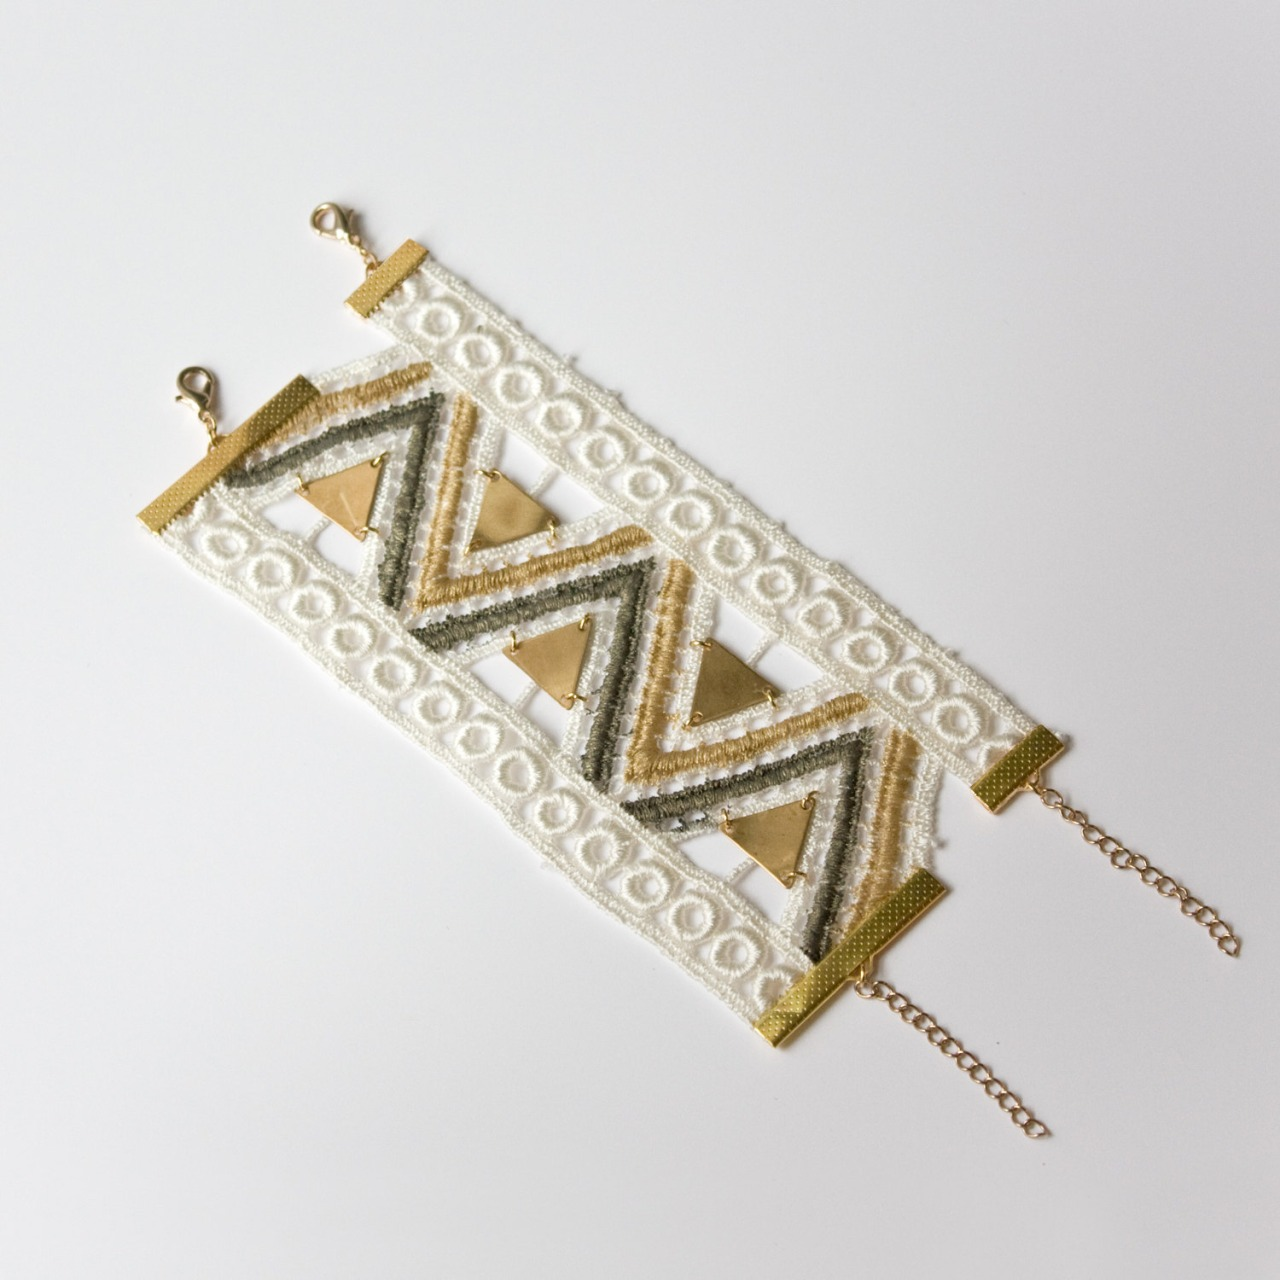 etsyfindoftheday: etsy find of the day 1 | 10.8.13 'aquarius' lace bracelet by thisilk GAH. how sick is this bracelet?! there are so many details to fall in love with … the gold, ivory and bronze lace, the inclusion of the brass triangles, the trendy boho design, the double fasteners. i'm swooning.